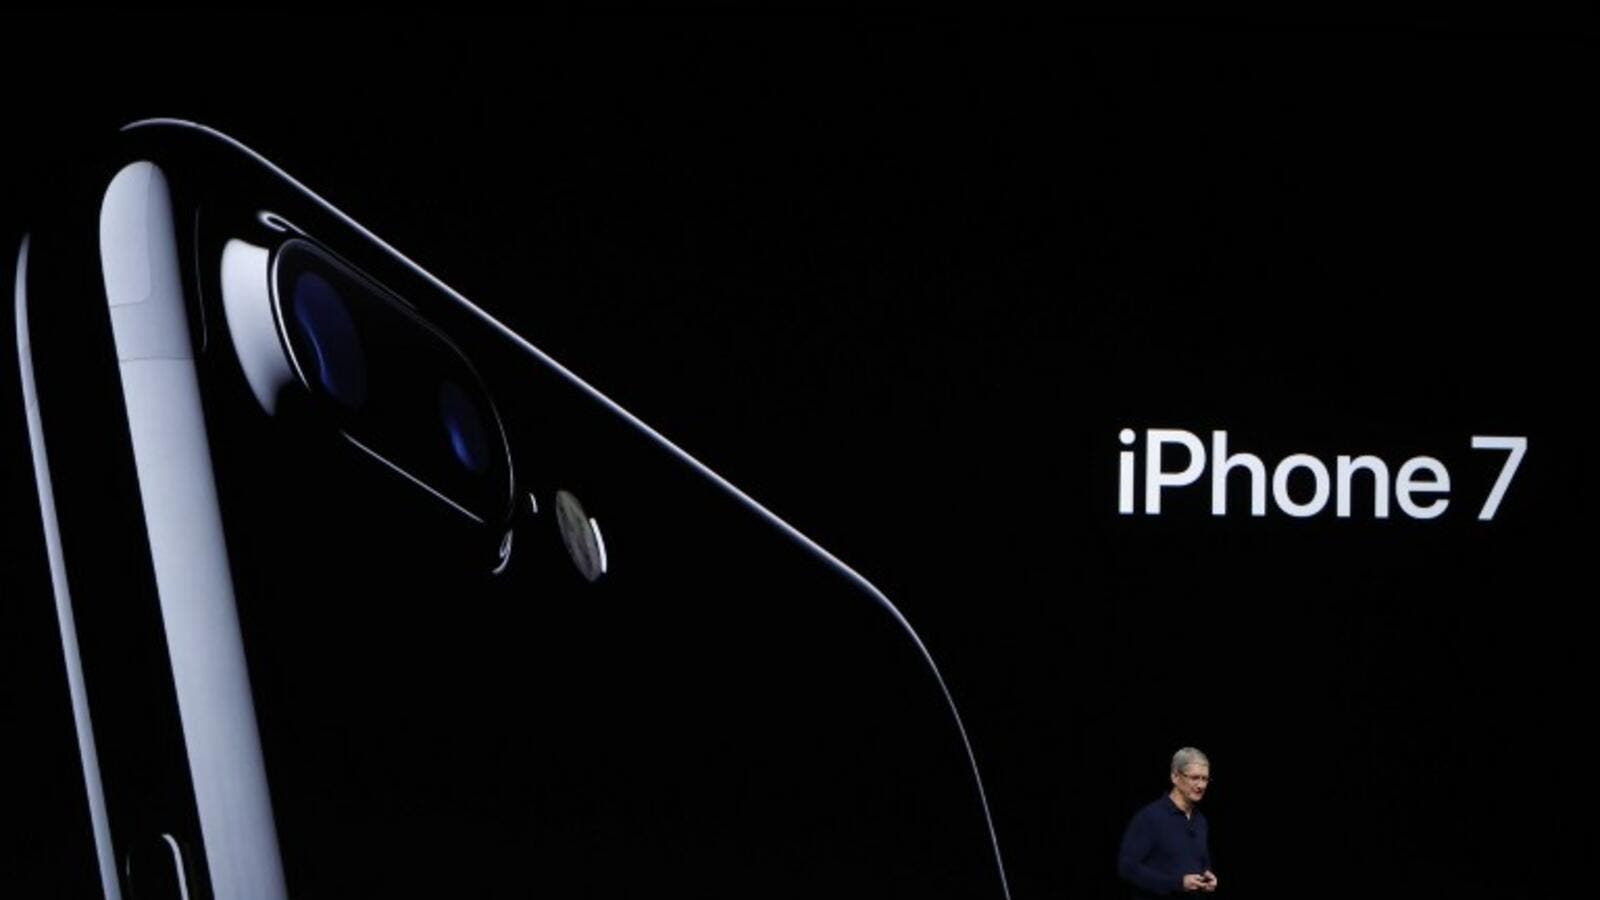 Apple Senior Vice President of Worldwide Marketing Phil Schiller at the iPhone 7 launch in San Francisco, California on September 07, 2016. (AFP/Josh Edelson)